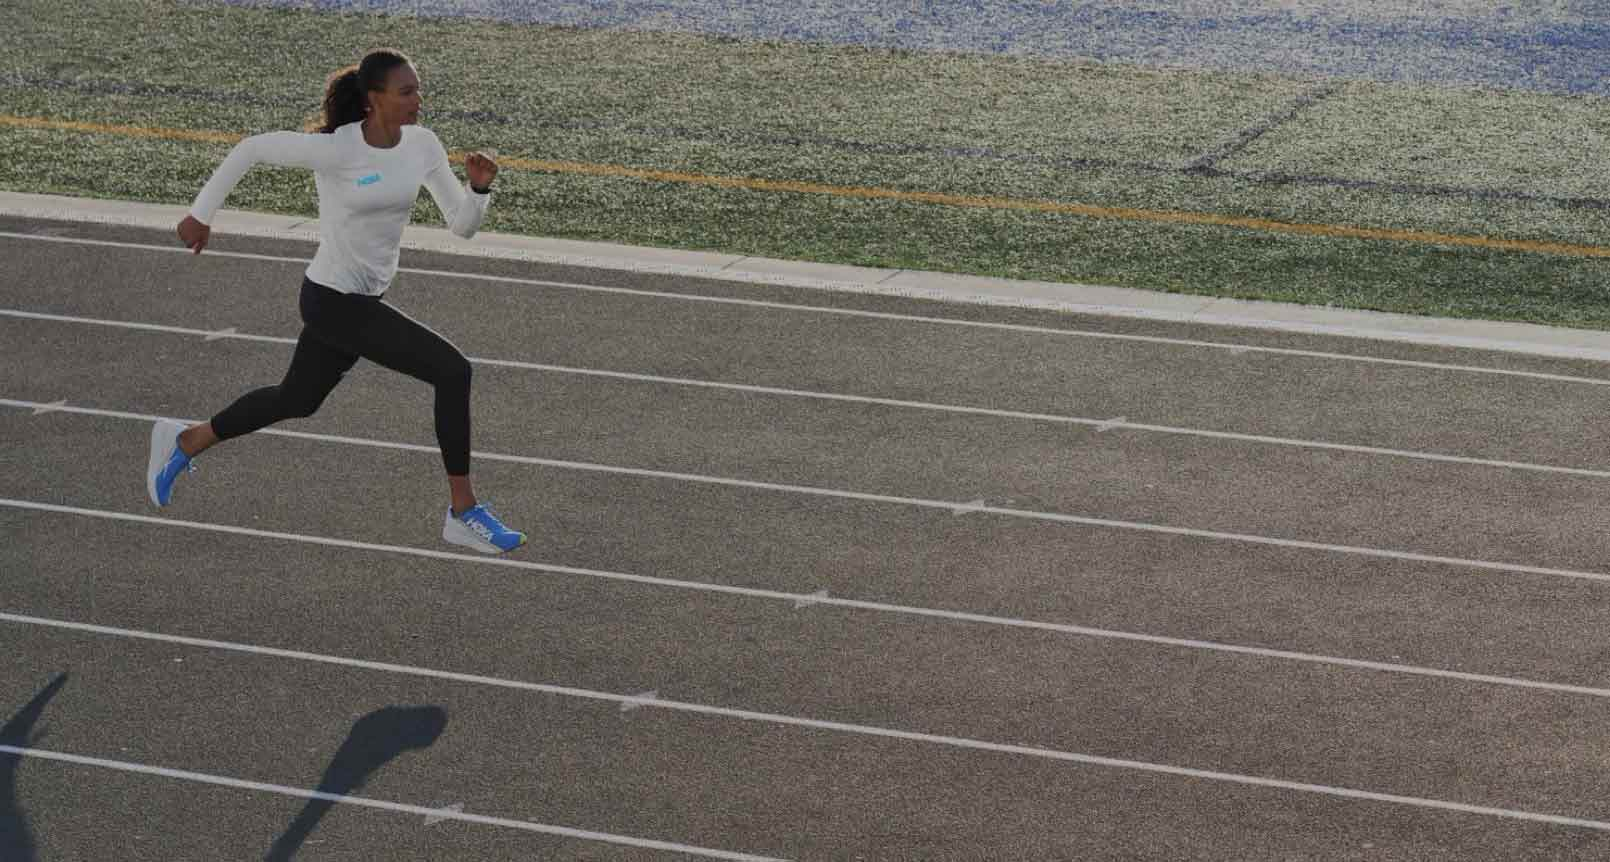 A woman sprinting on a track